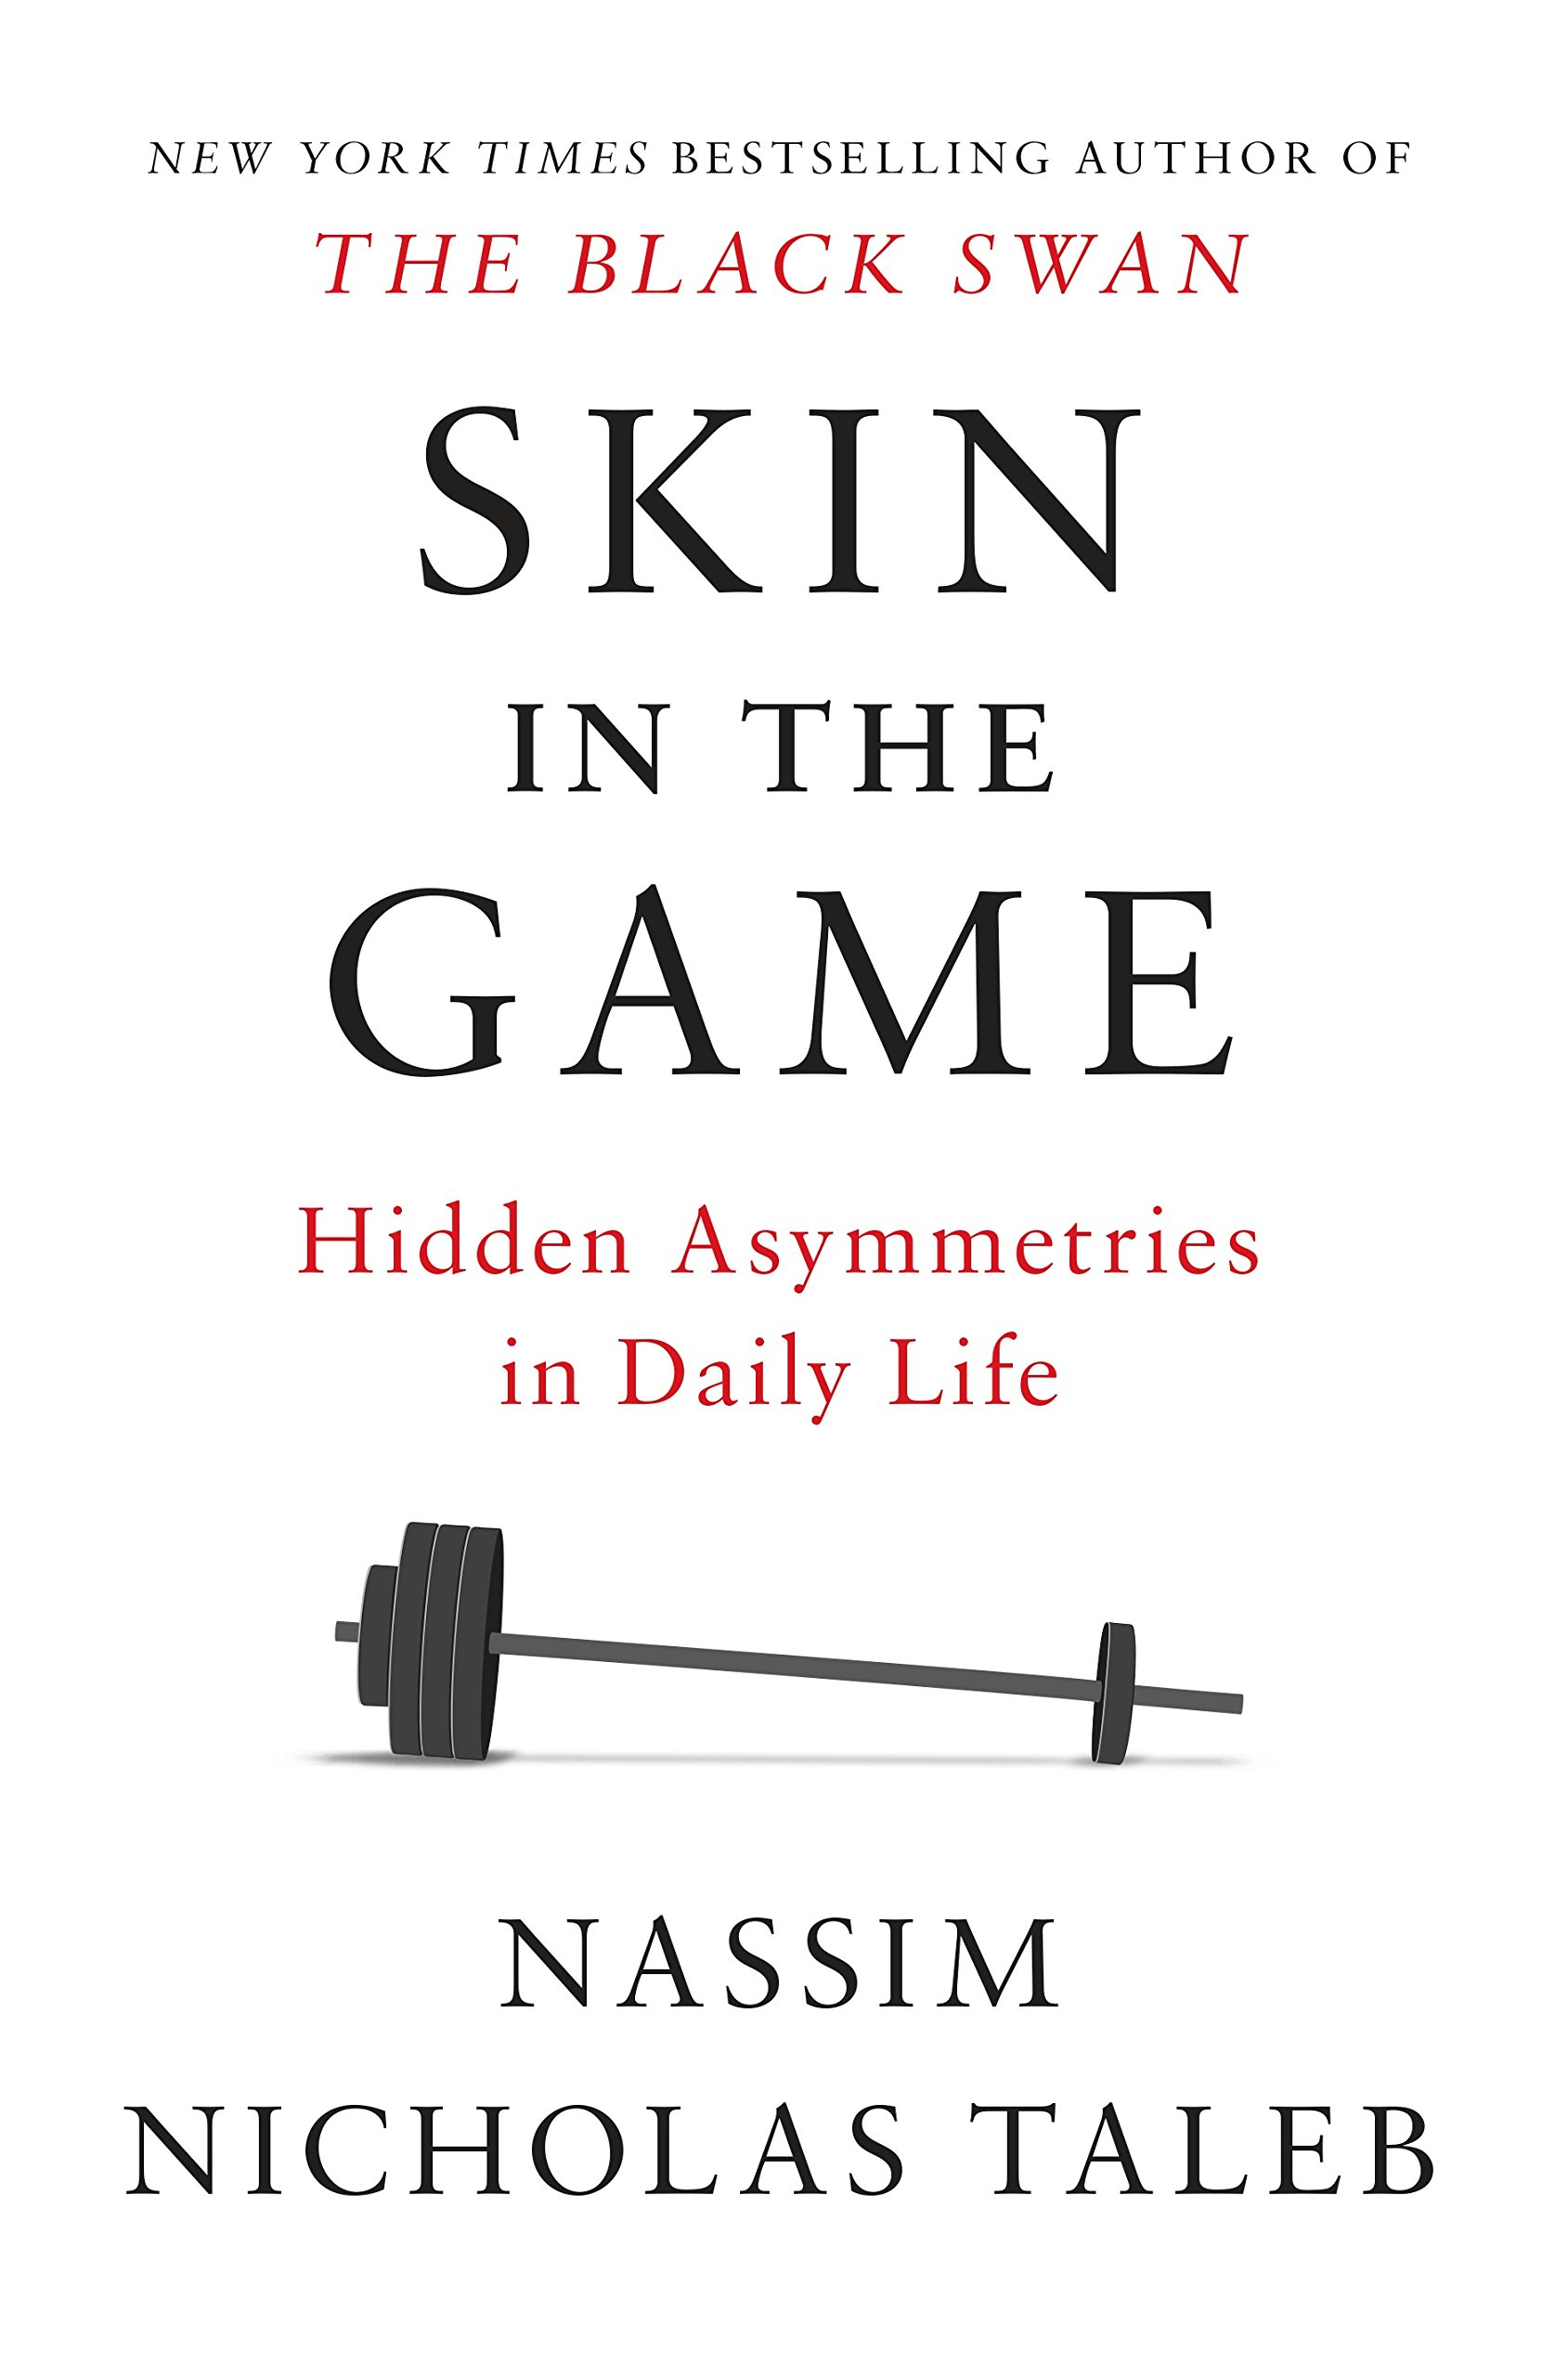 Skin in the Game Hidden Asymmetries in Daily Life